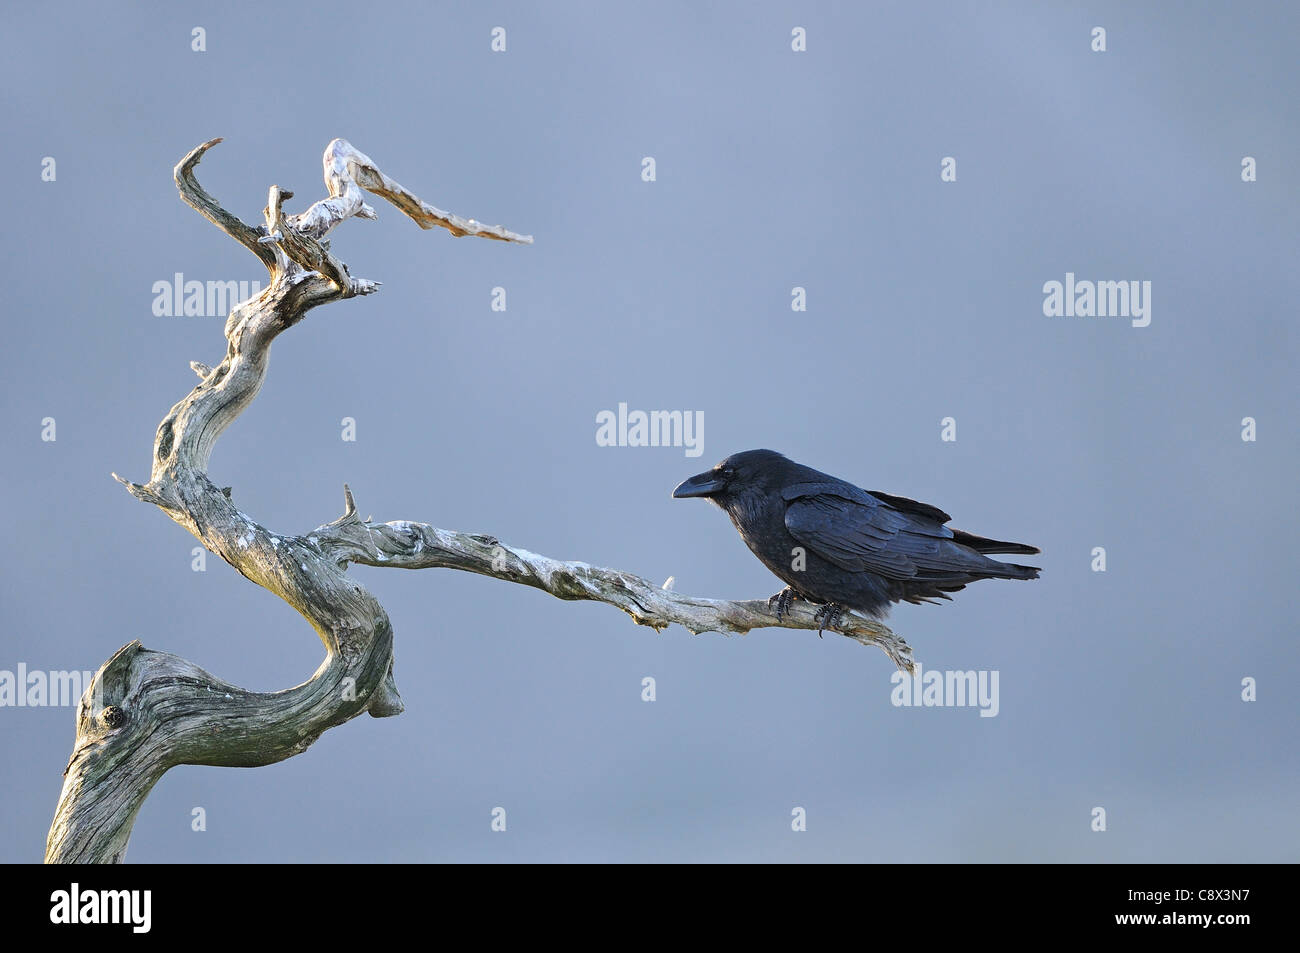 Raven (Corvus corax) perched on dead tree, Norway - Stock Image